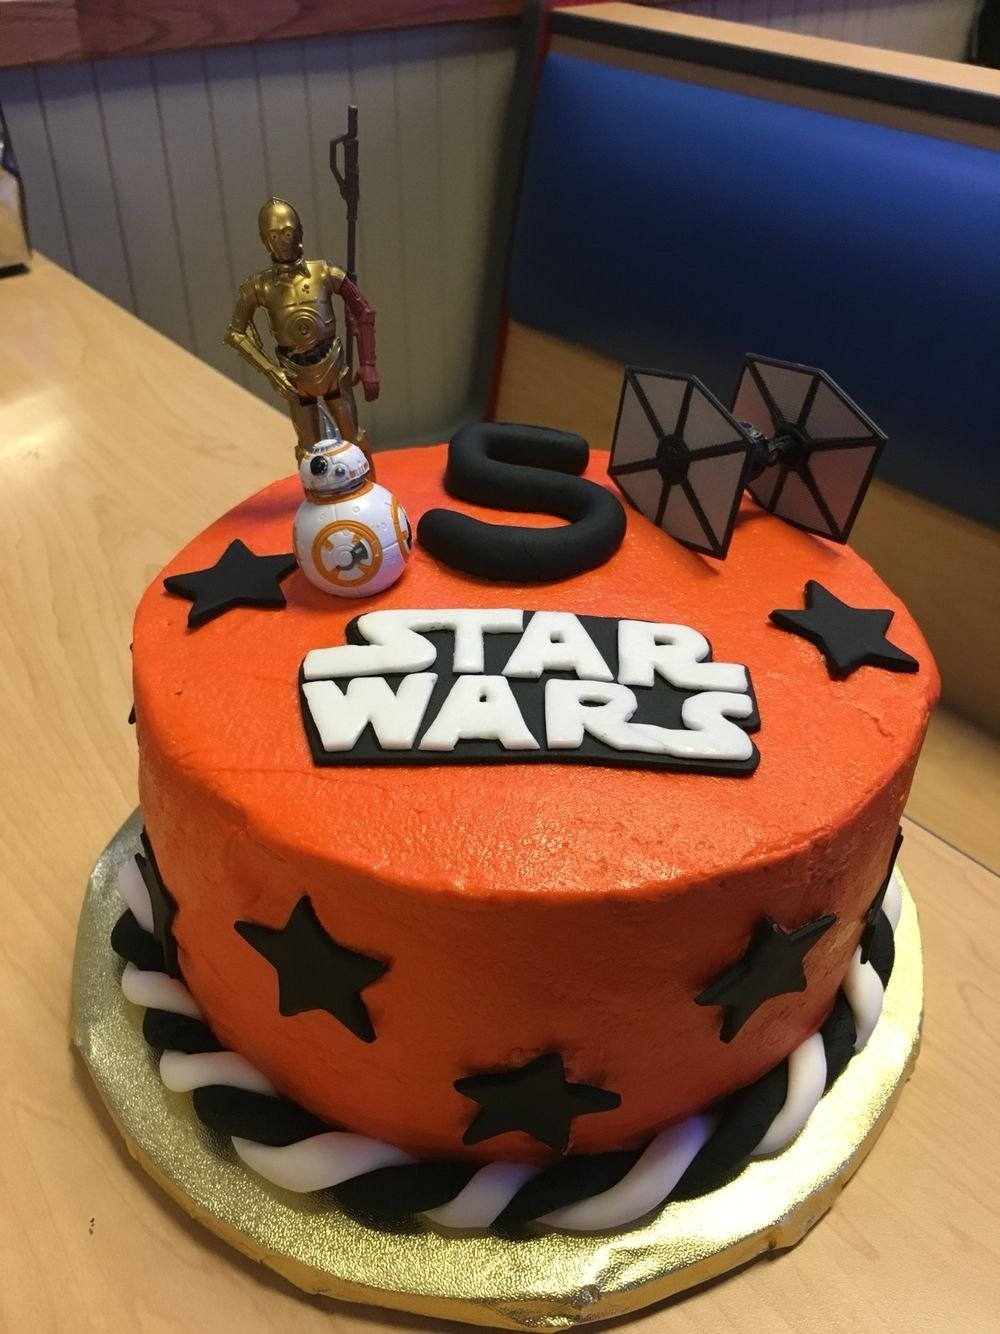 10 Nice Star Wars Birthday Cake Ideas Force Awakens Homemade Buttercream With